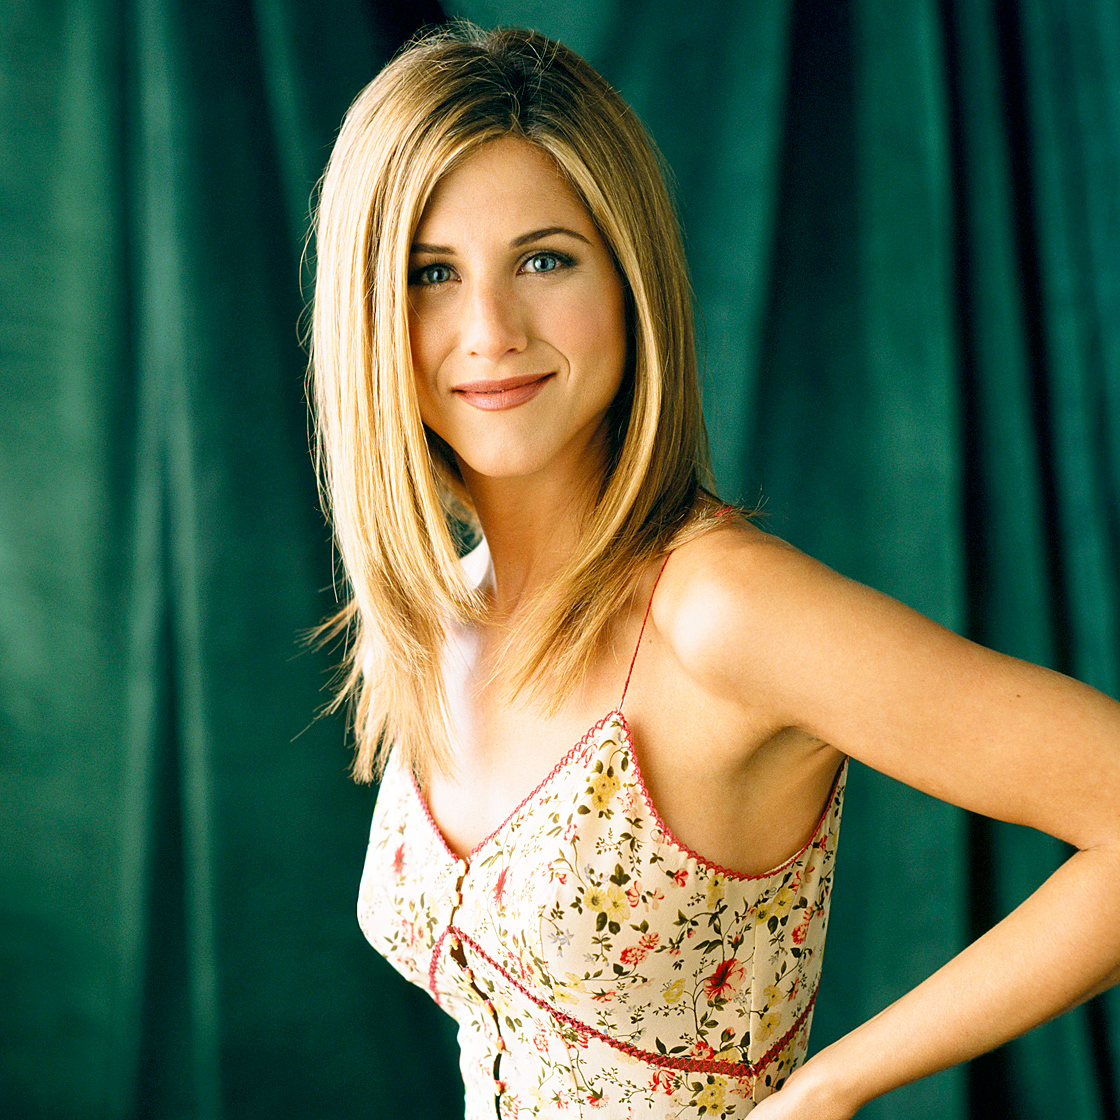 Starring as the lovable Rachel Green, Aniston once appeared opposite her then-hubby Brad Pitt in a 2001 Thanksgiving-themed episode.